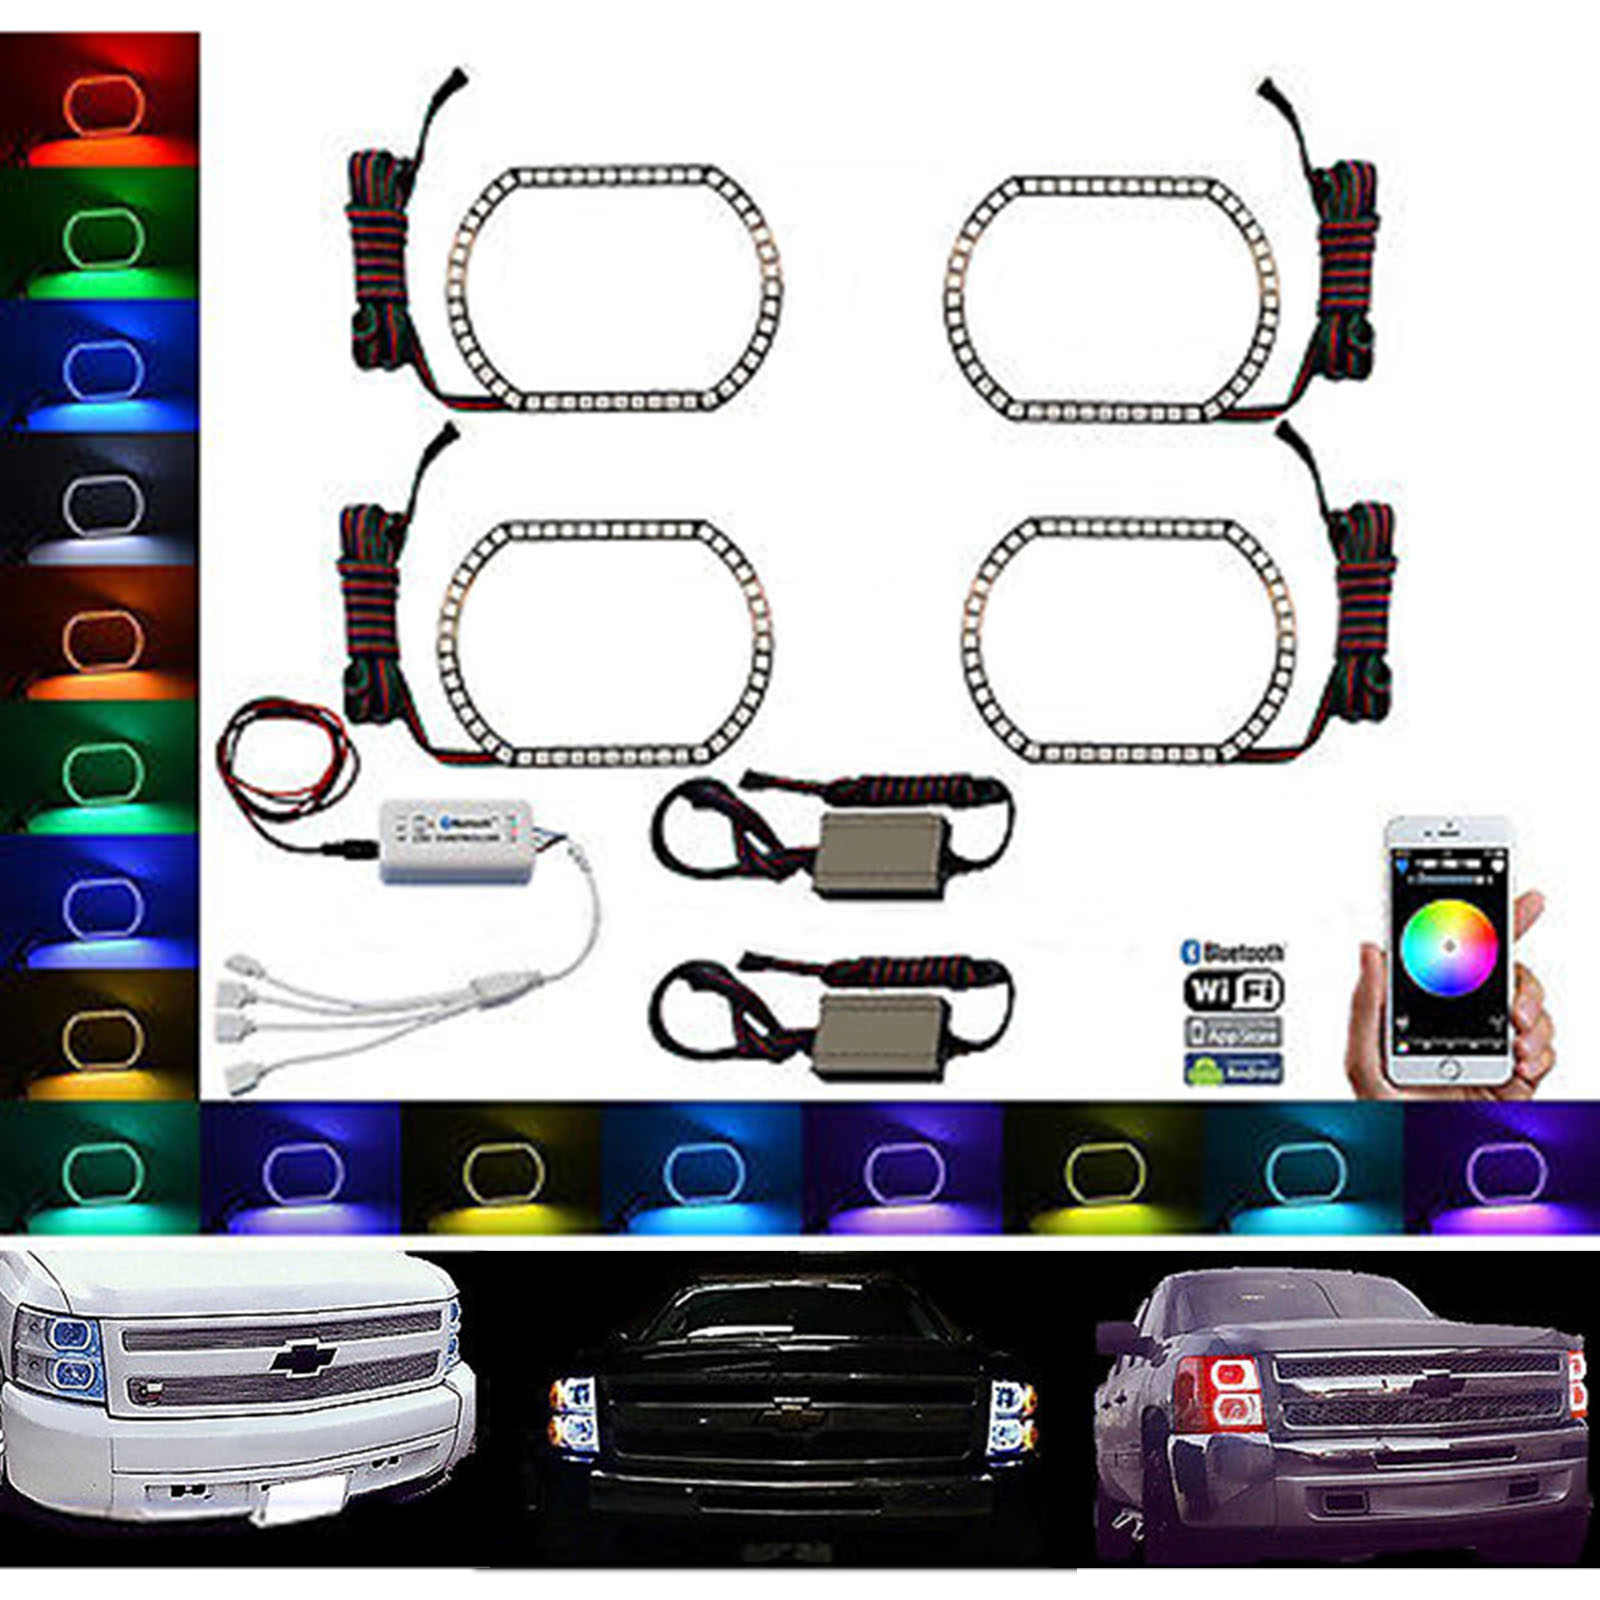 Details about 11-11 Chevy Silverado Multi-Color LED RGB Headlight Halo Ring  BLUETOOTH Set | multi chevrolet